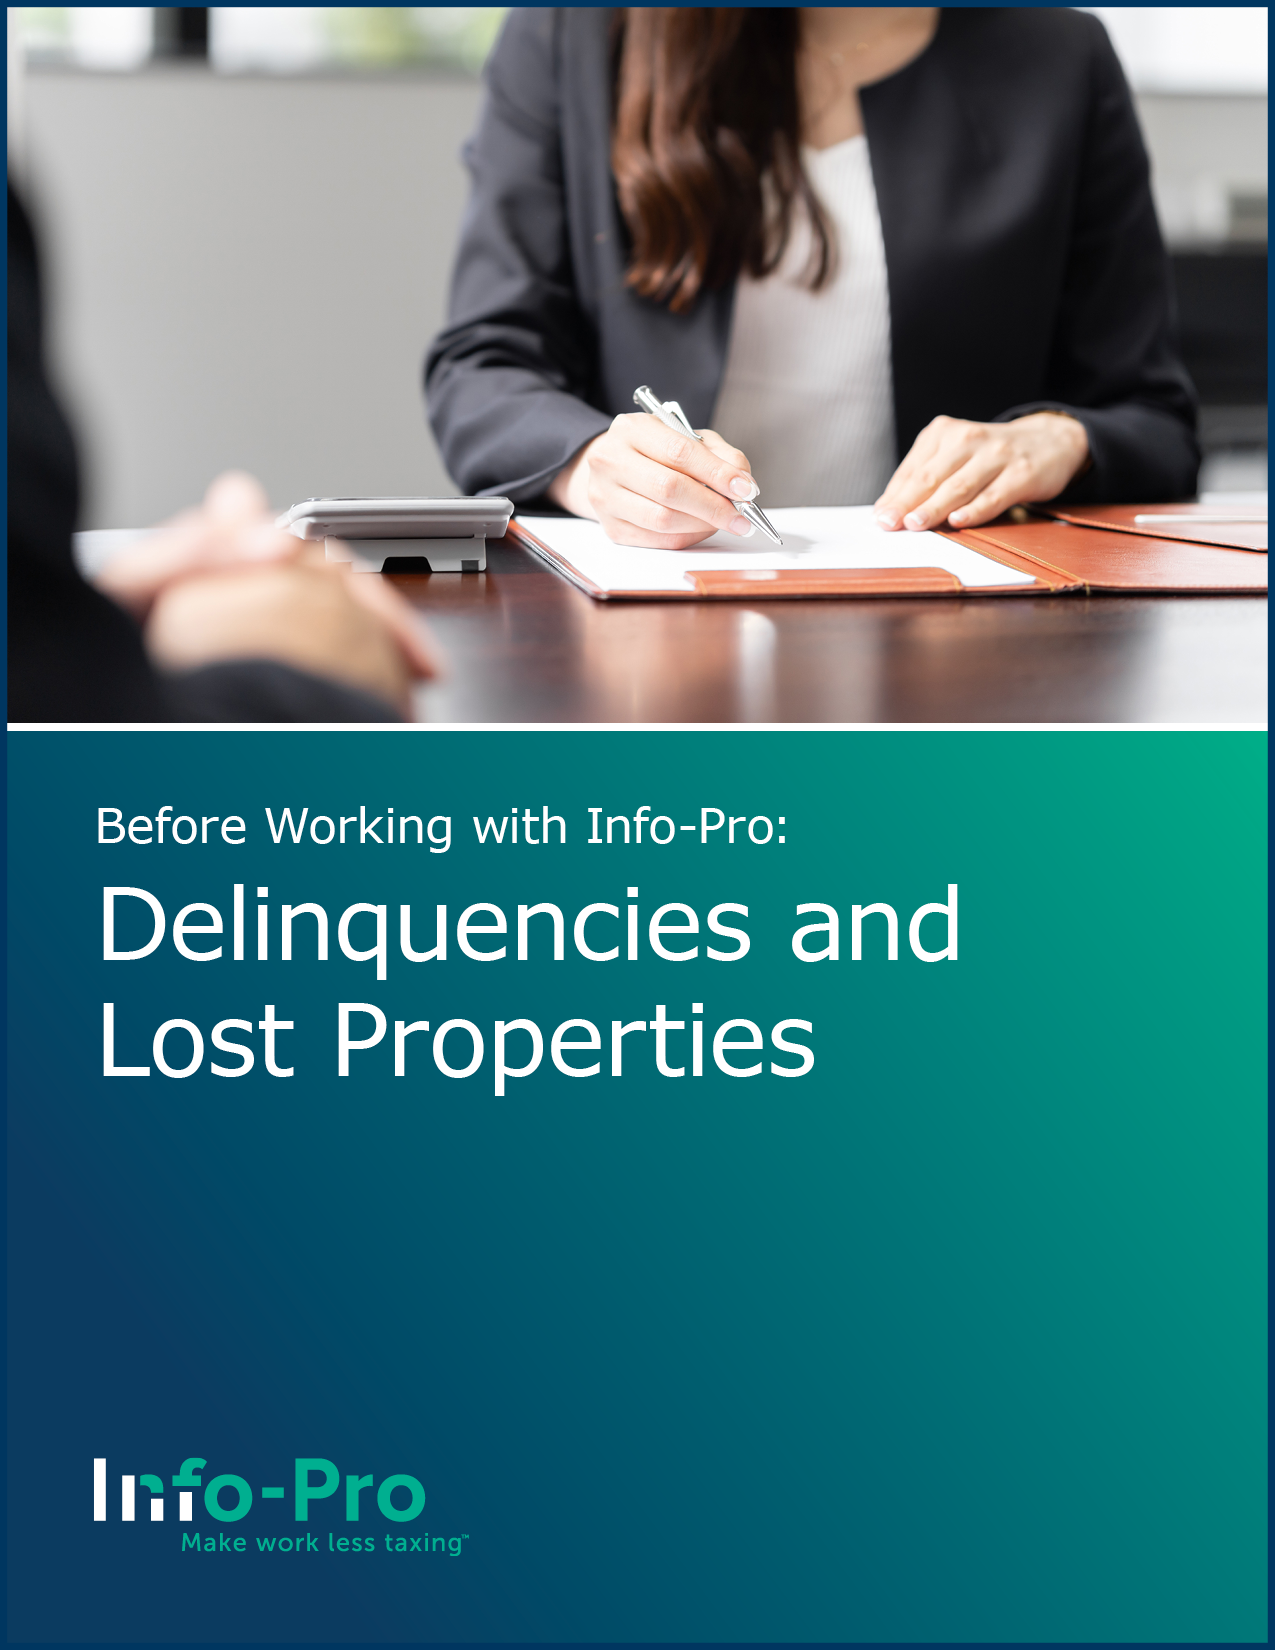 IFP_Ebook2020_BeforeWorkingWithInfoPro_Cover